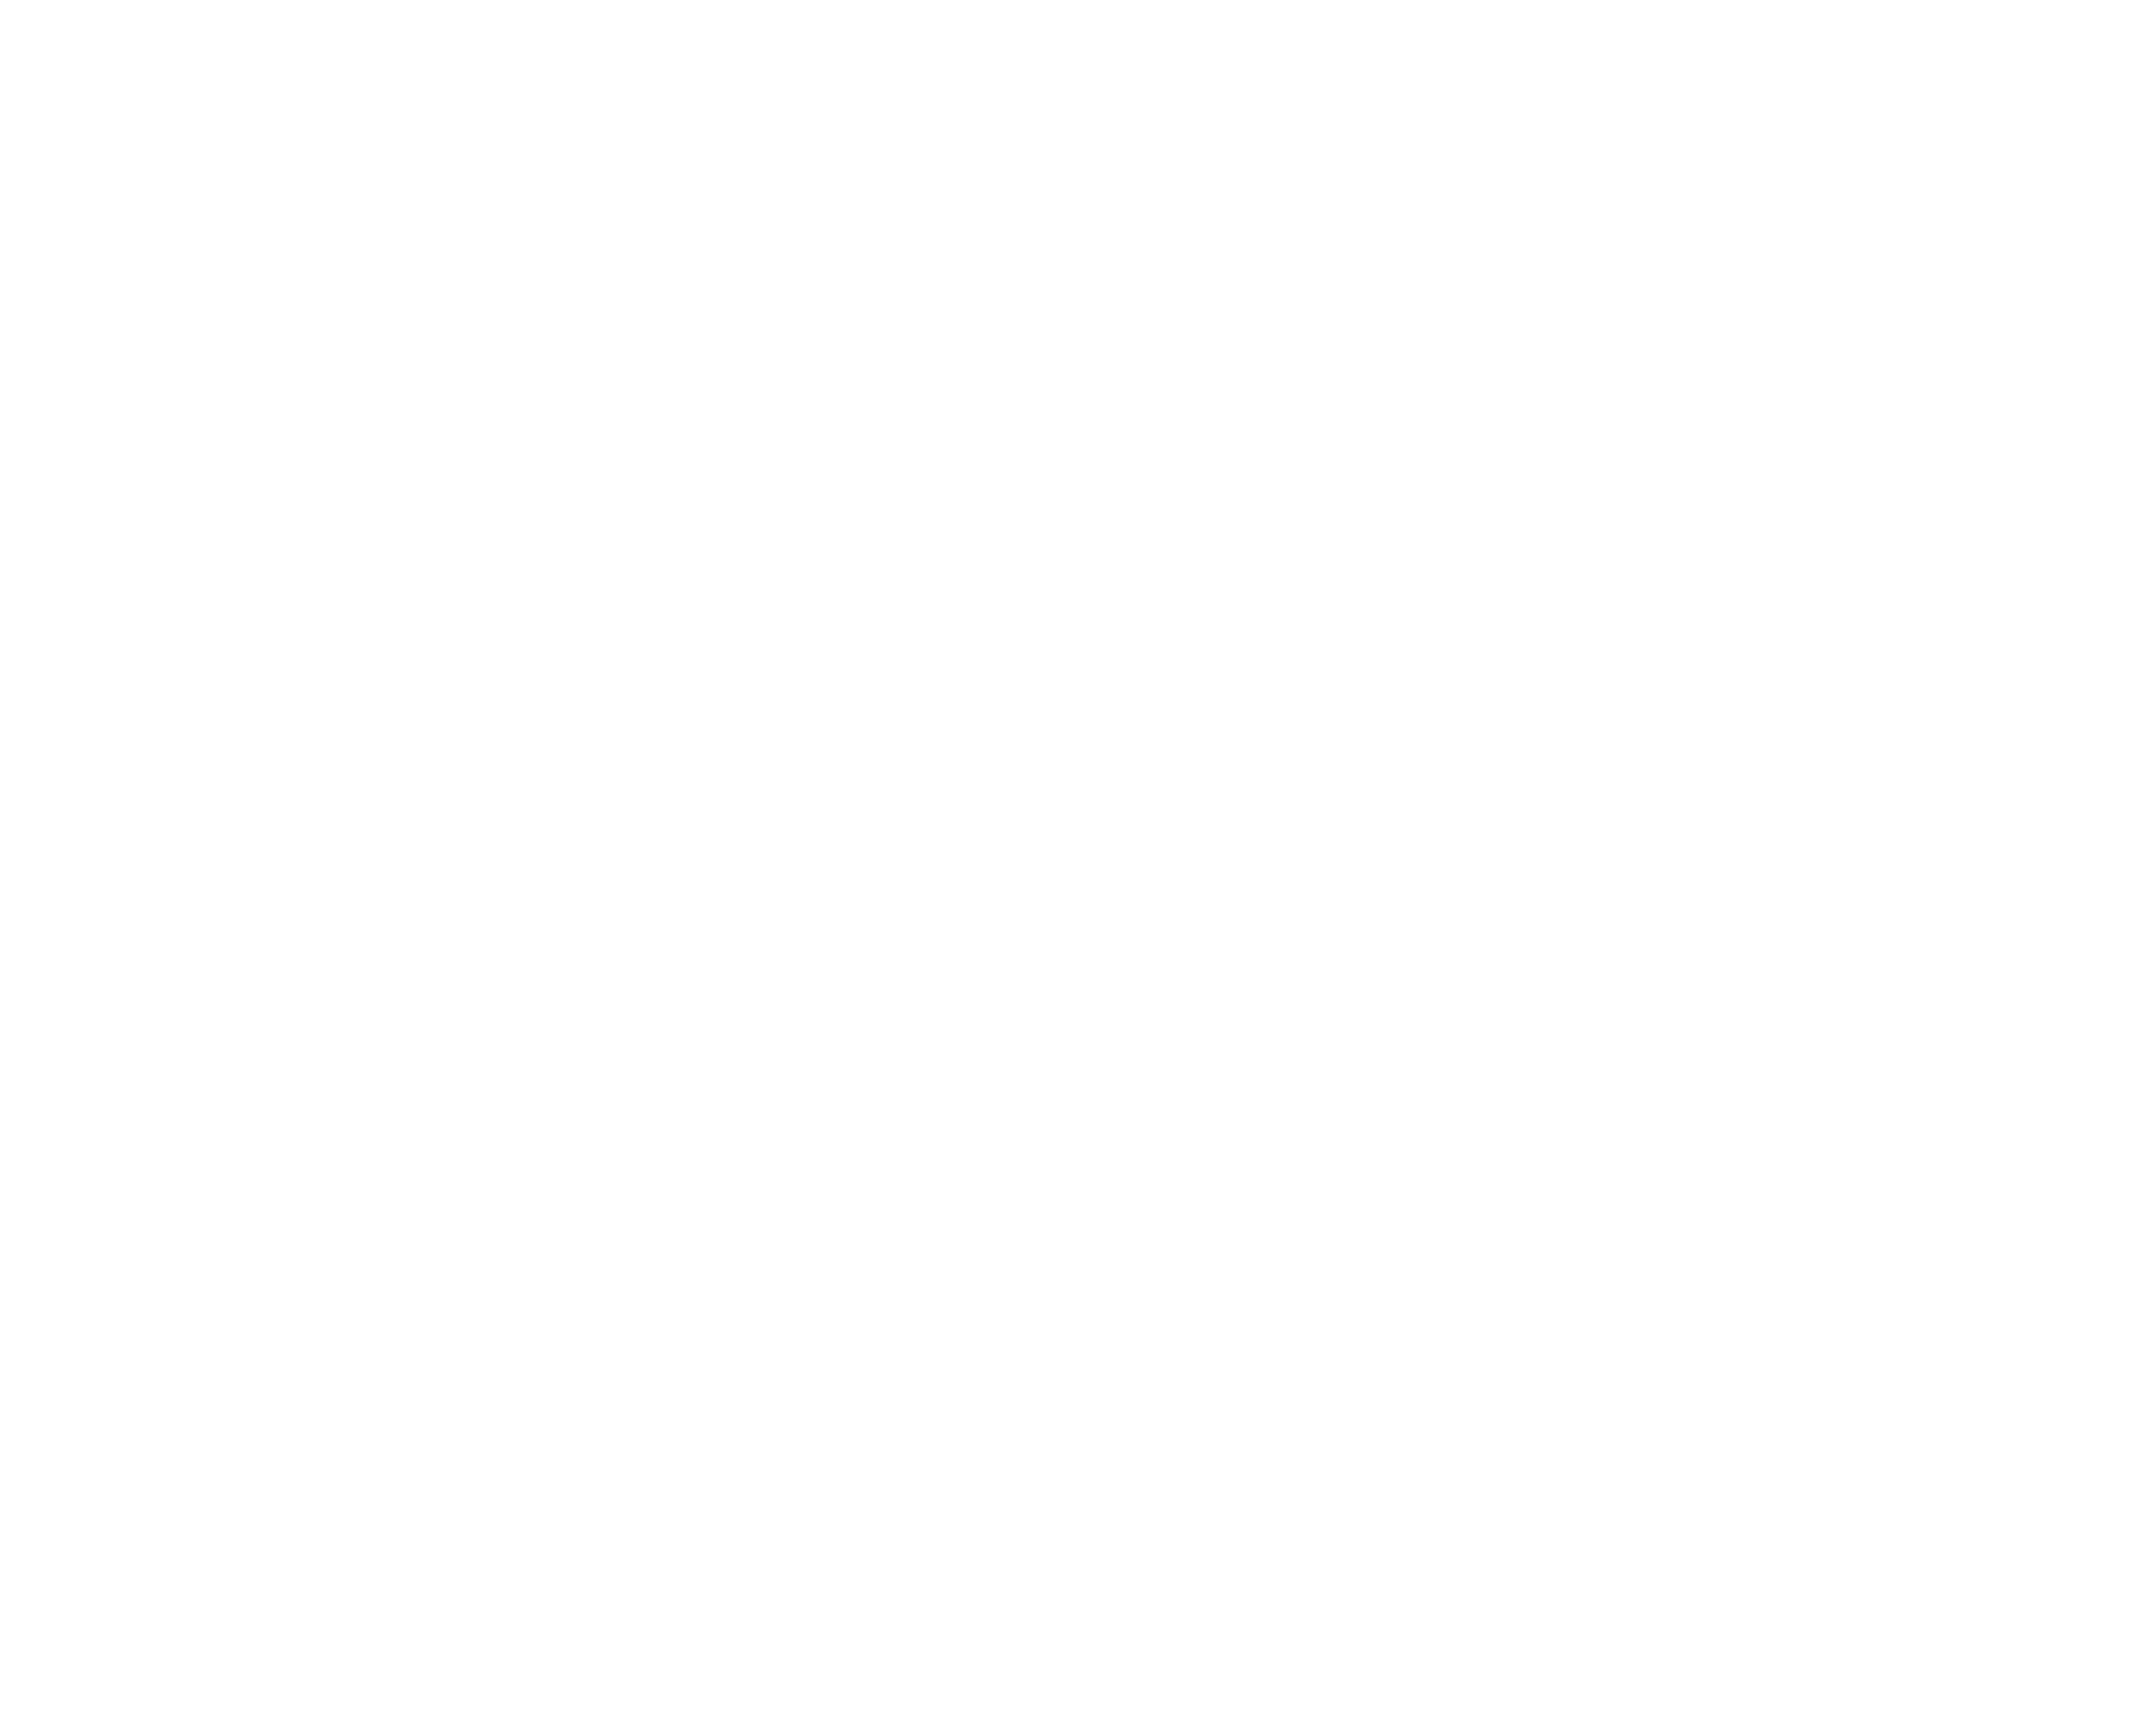 Arbour Ridge Farm